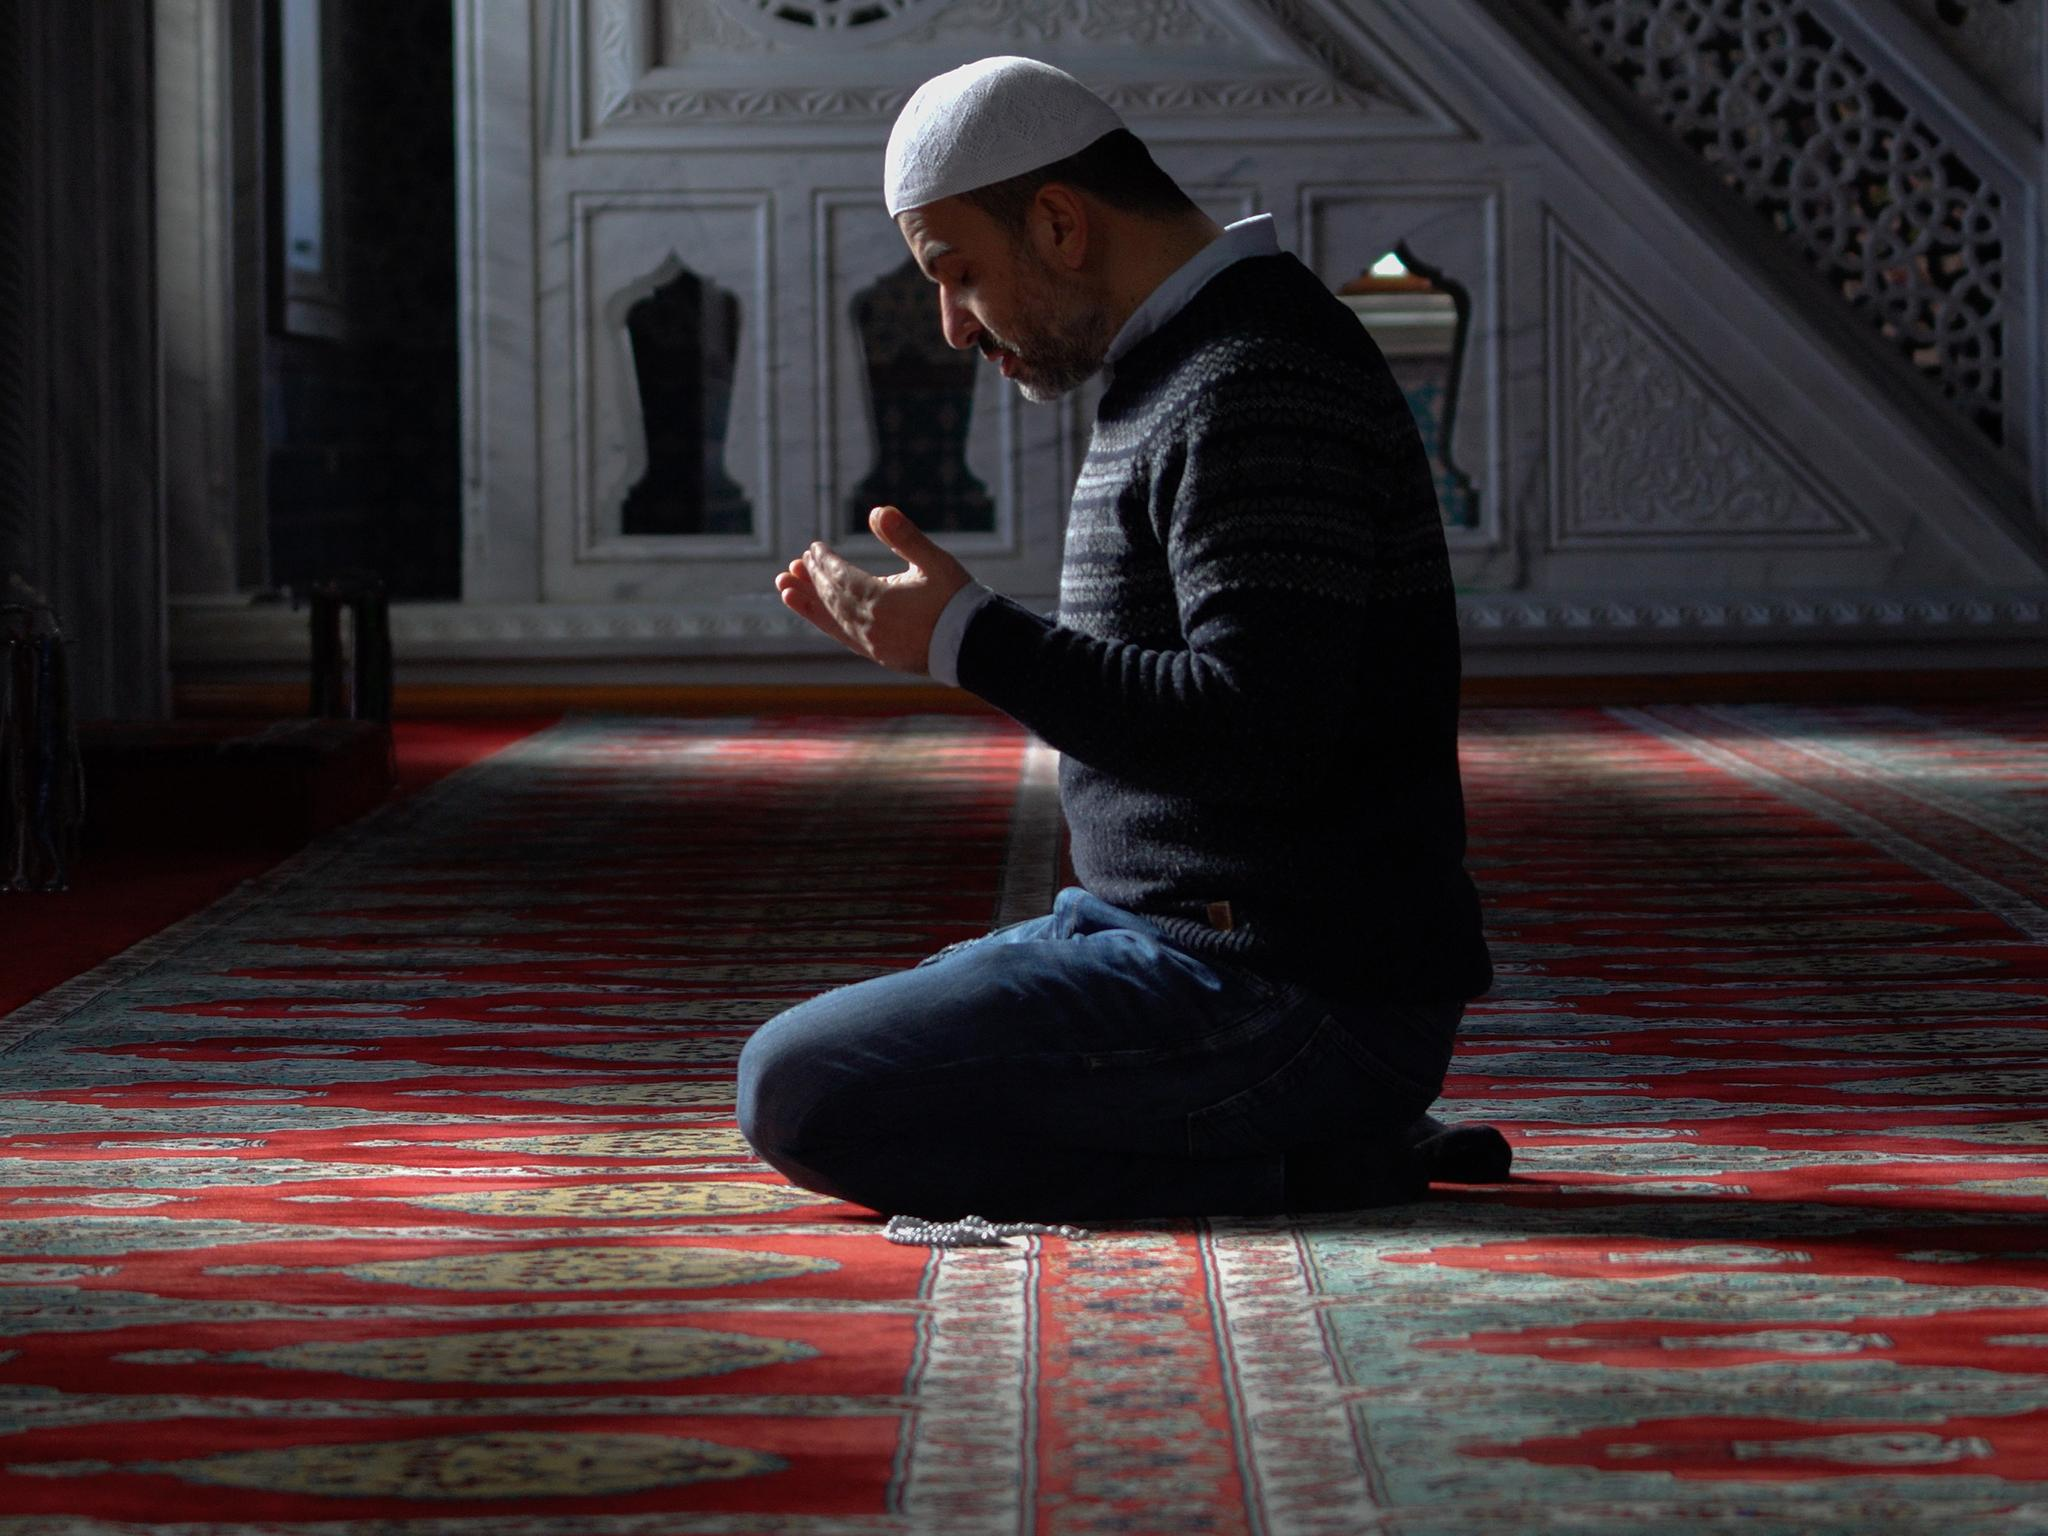 Muslims to become US second largest religious group by the year 2040, says new research